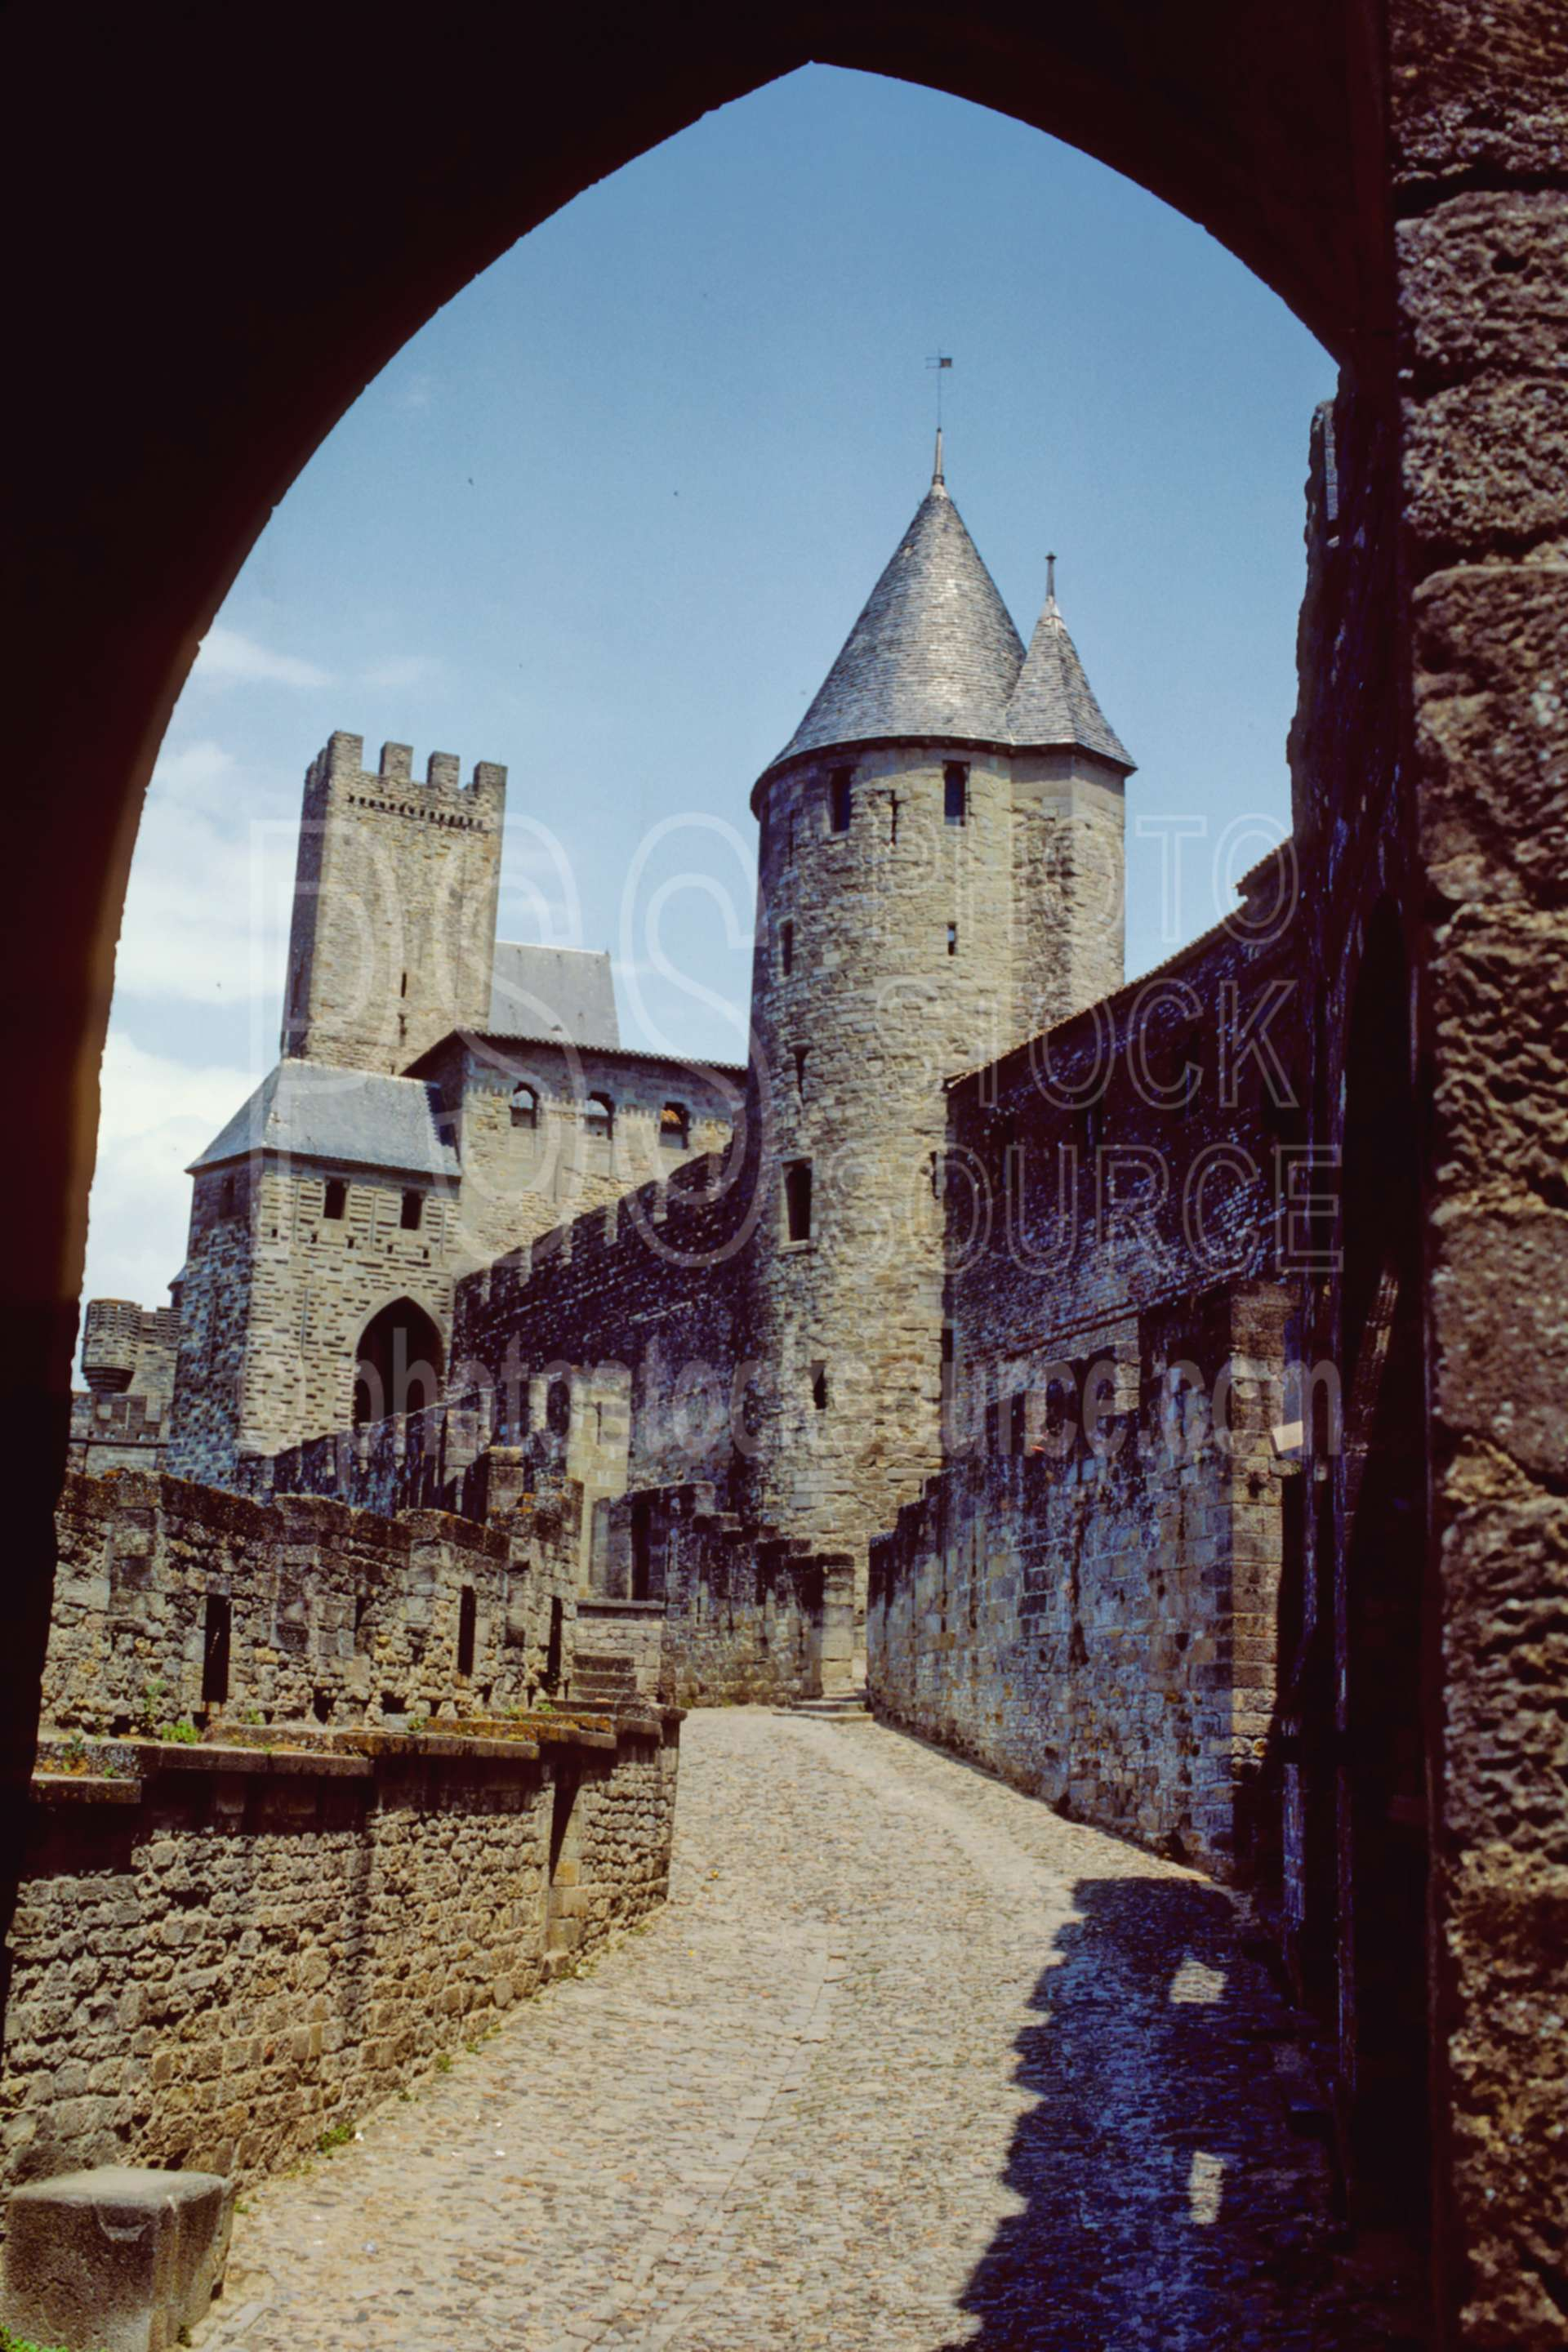 Entrance to the City,castle,europe,medieval,wall,france castles